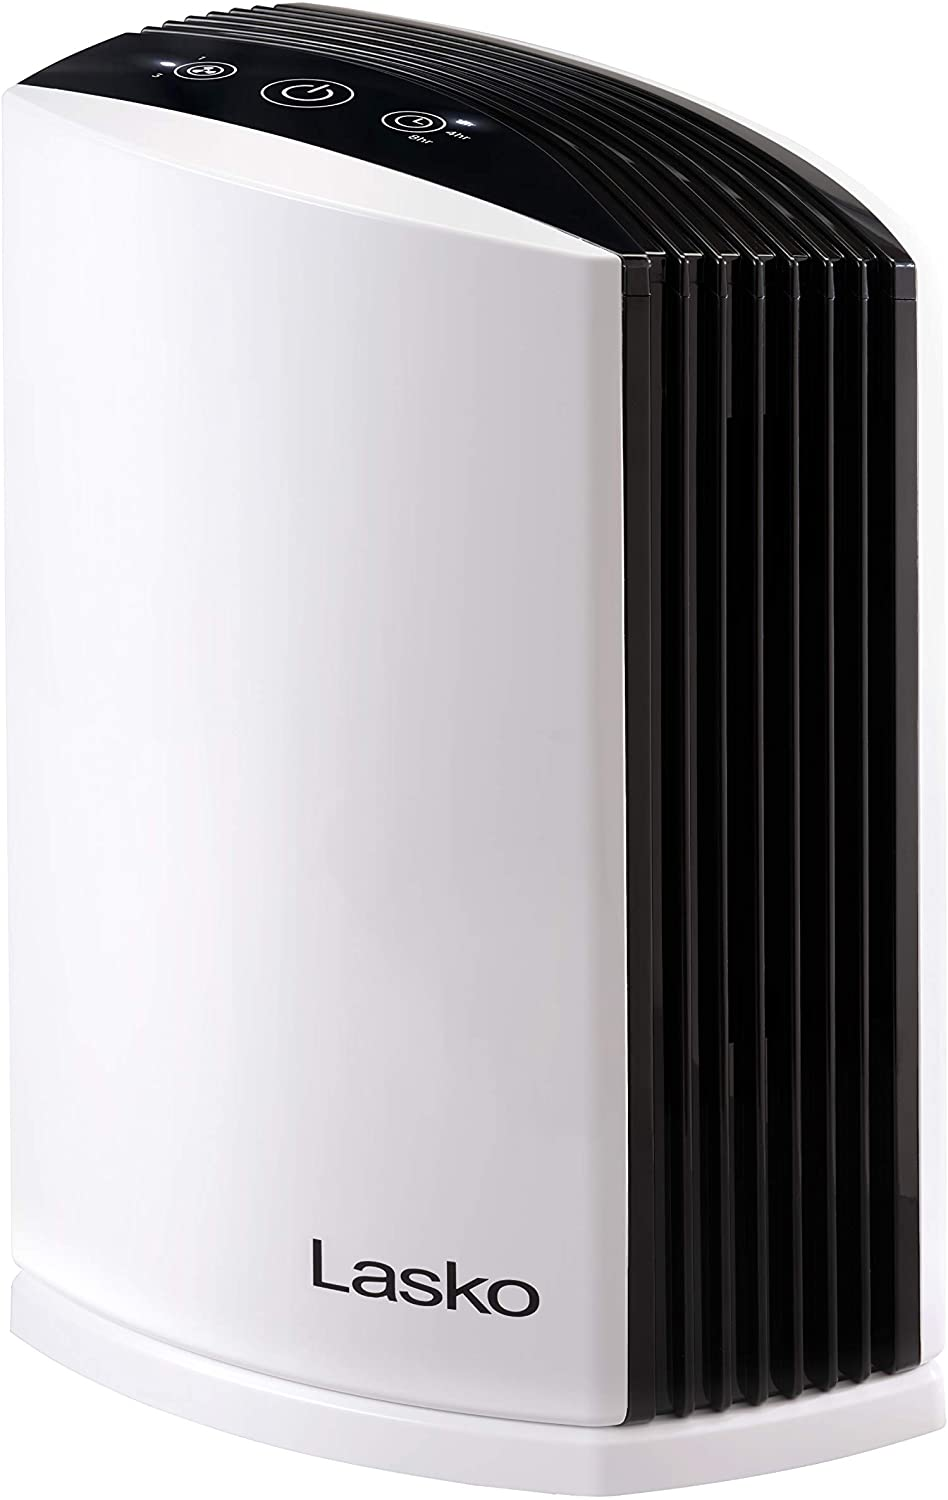 Lasko LP200 HEPA Desktop Air Purifier with Timer for a Cleaner, Fresher Home Environment – 2-Stage Filtration Removes Smoke, Odors, Pet Dander, Virus Sized Particles, Pollen, Dust and Mold Spores